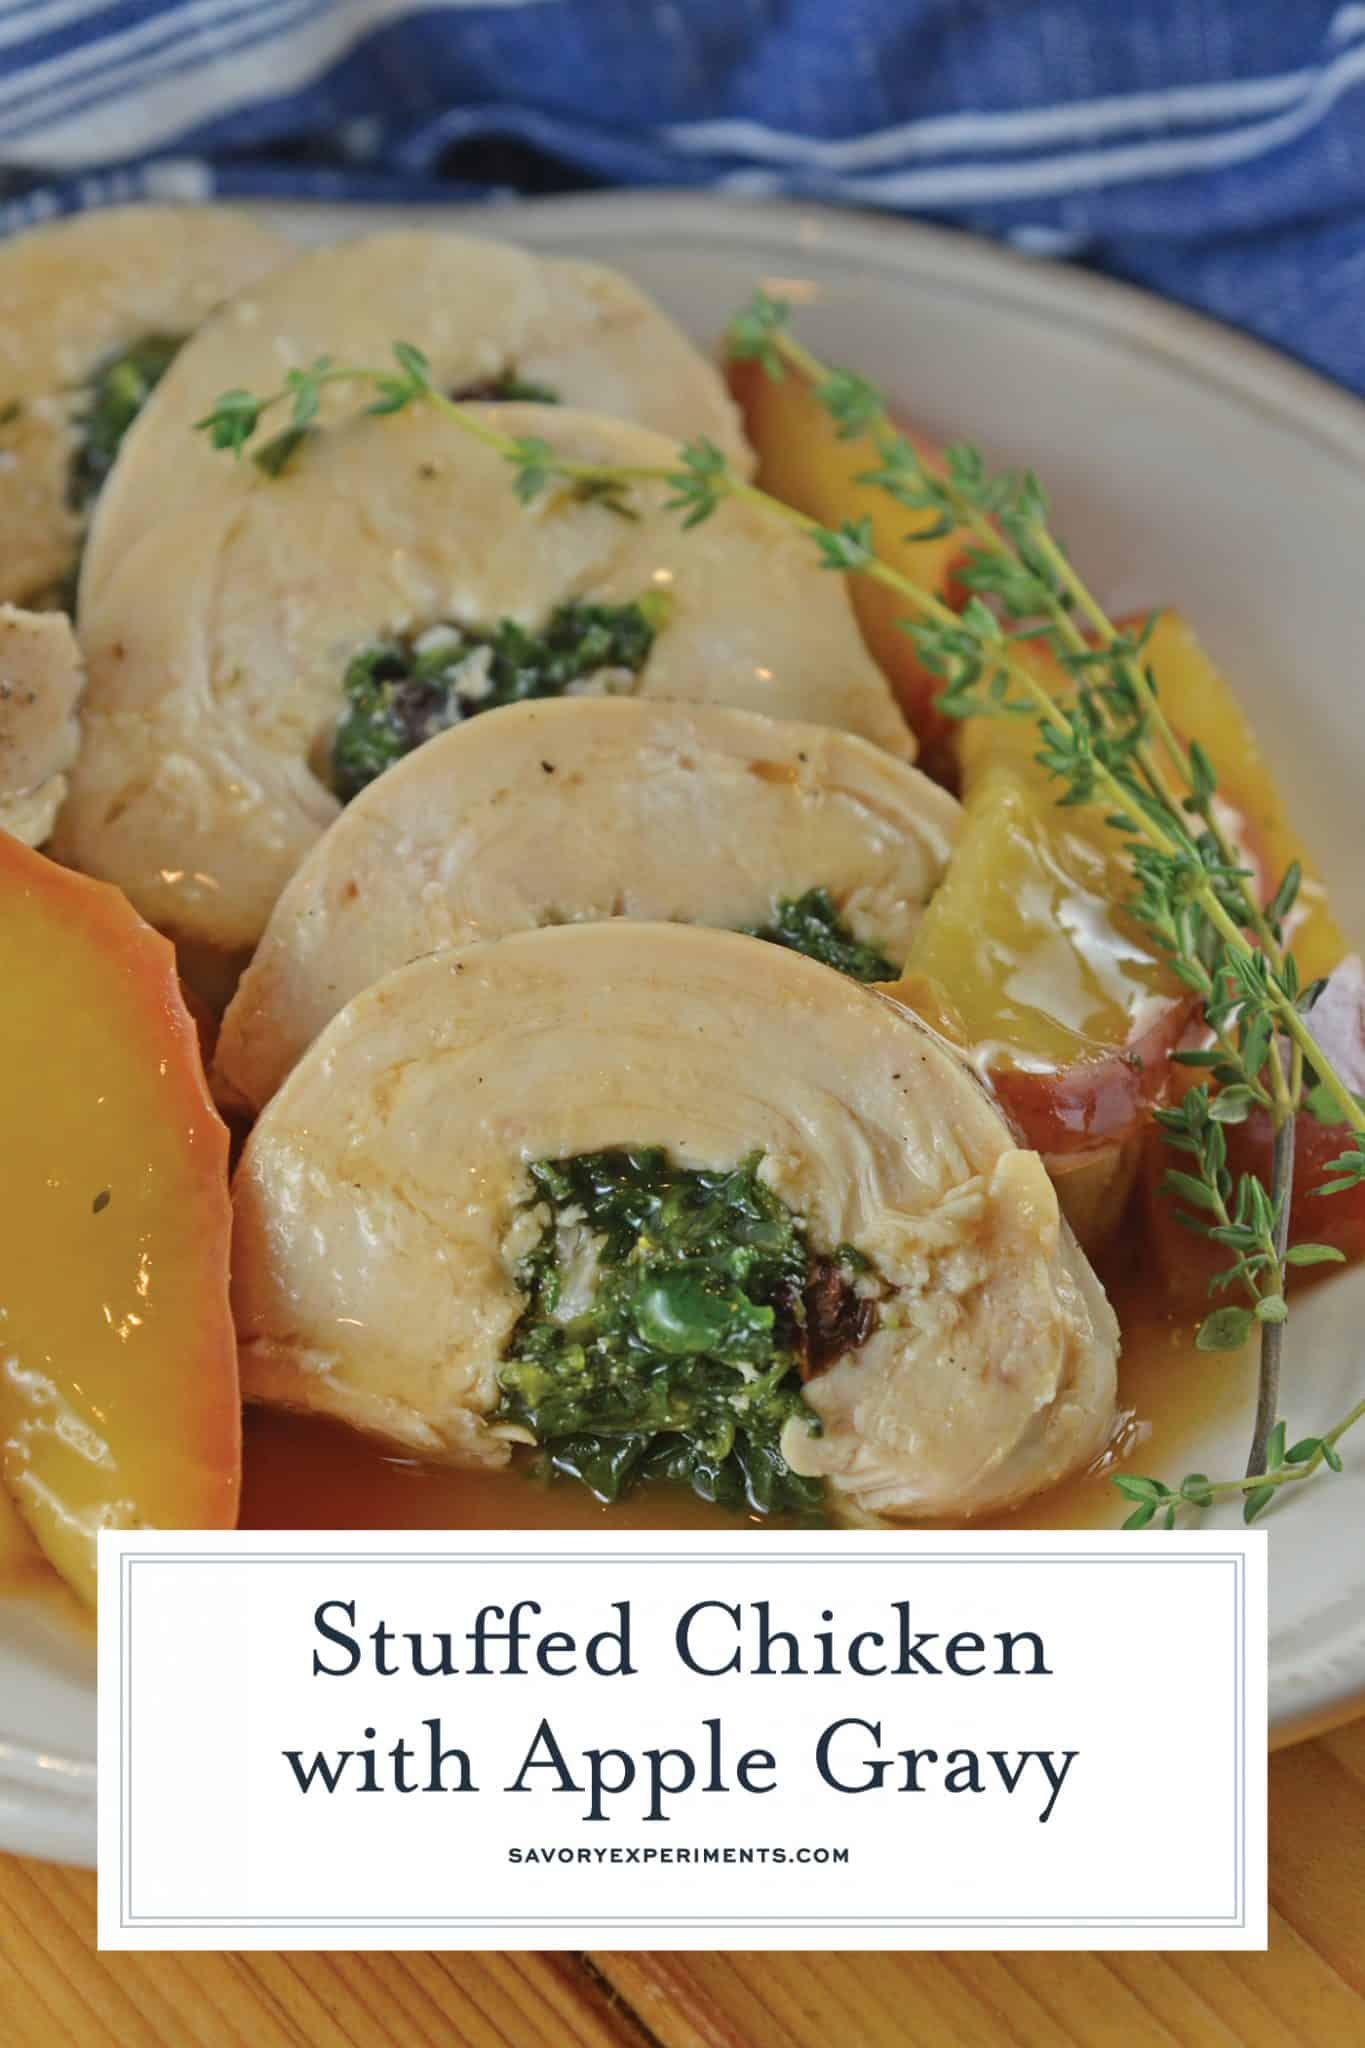 Award winning Stuffed Chicken with Apple Gravy uses pine nuts, spinach, currants and garlic with a savory apple gravy to finish off this easy dinner recipe! #stuffedchickenbreastrecipe #easychickendinner www.savoryexperiments.com